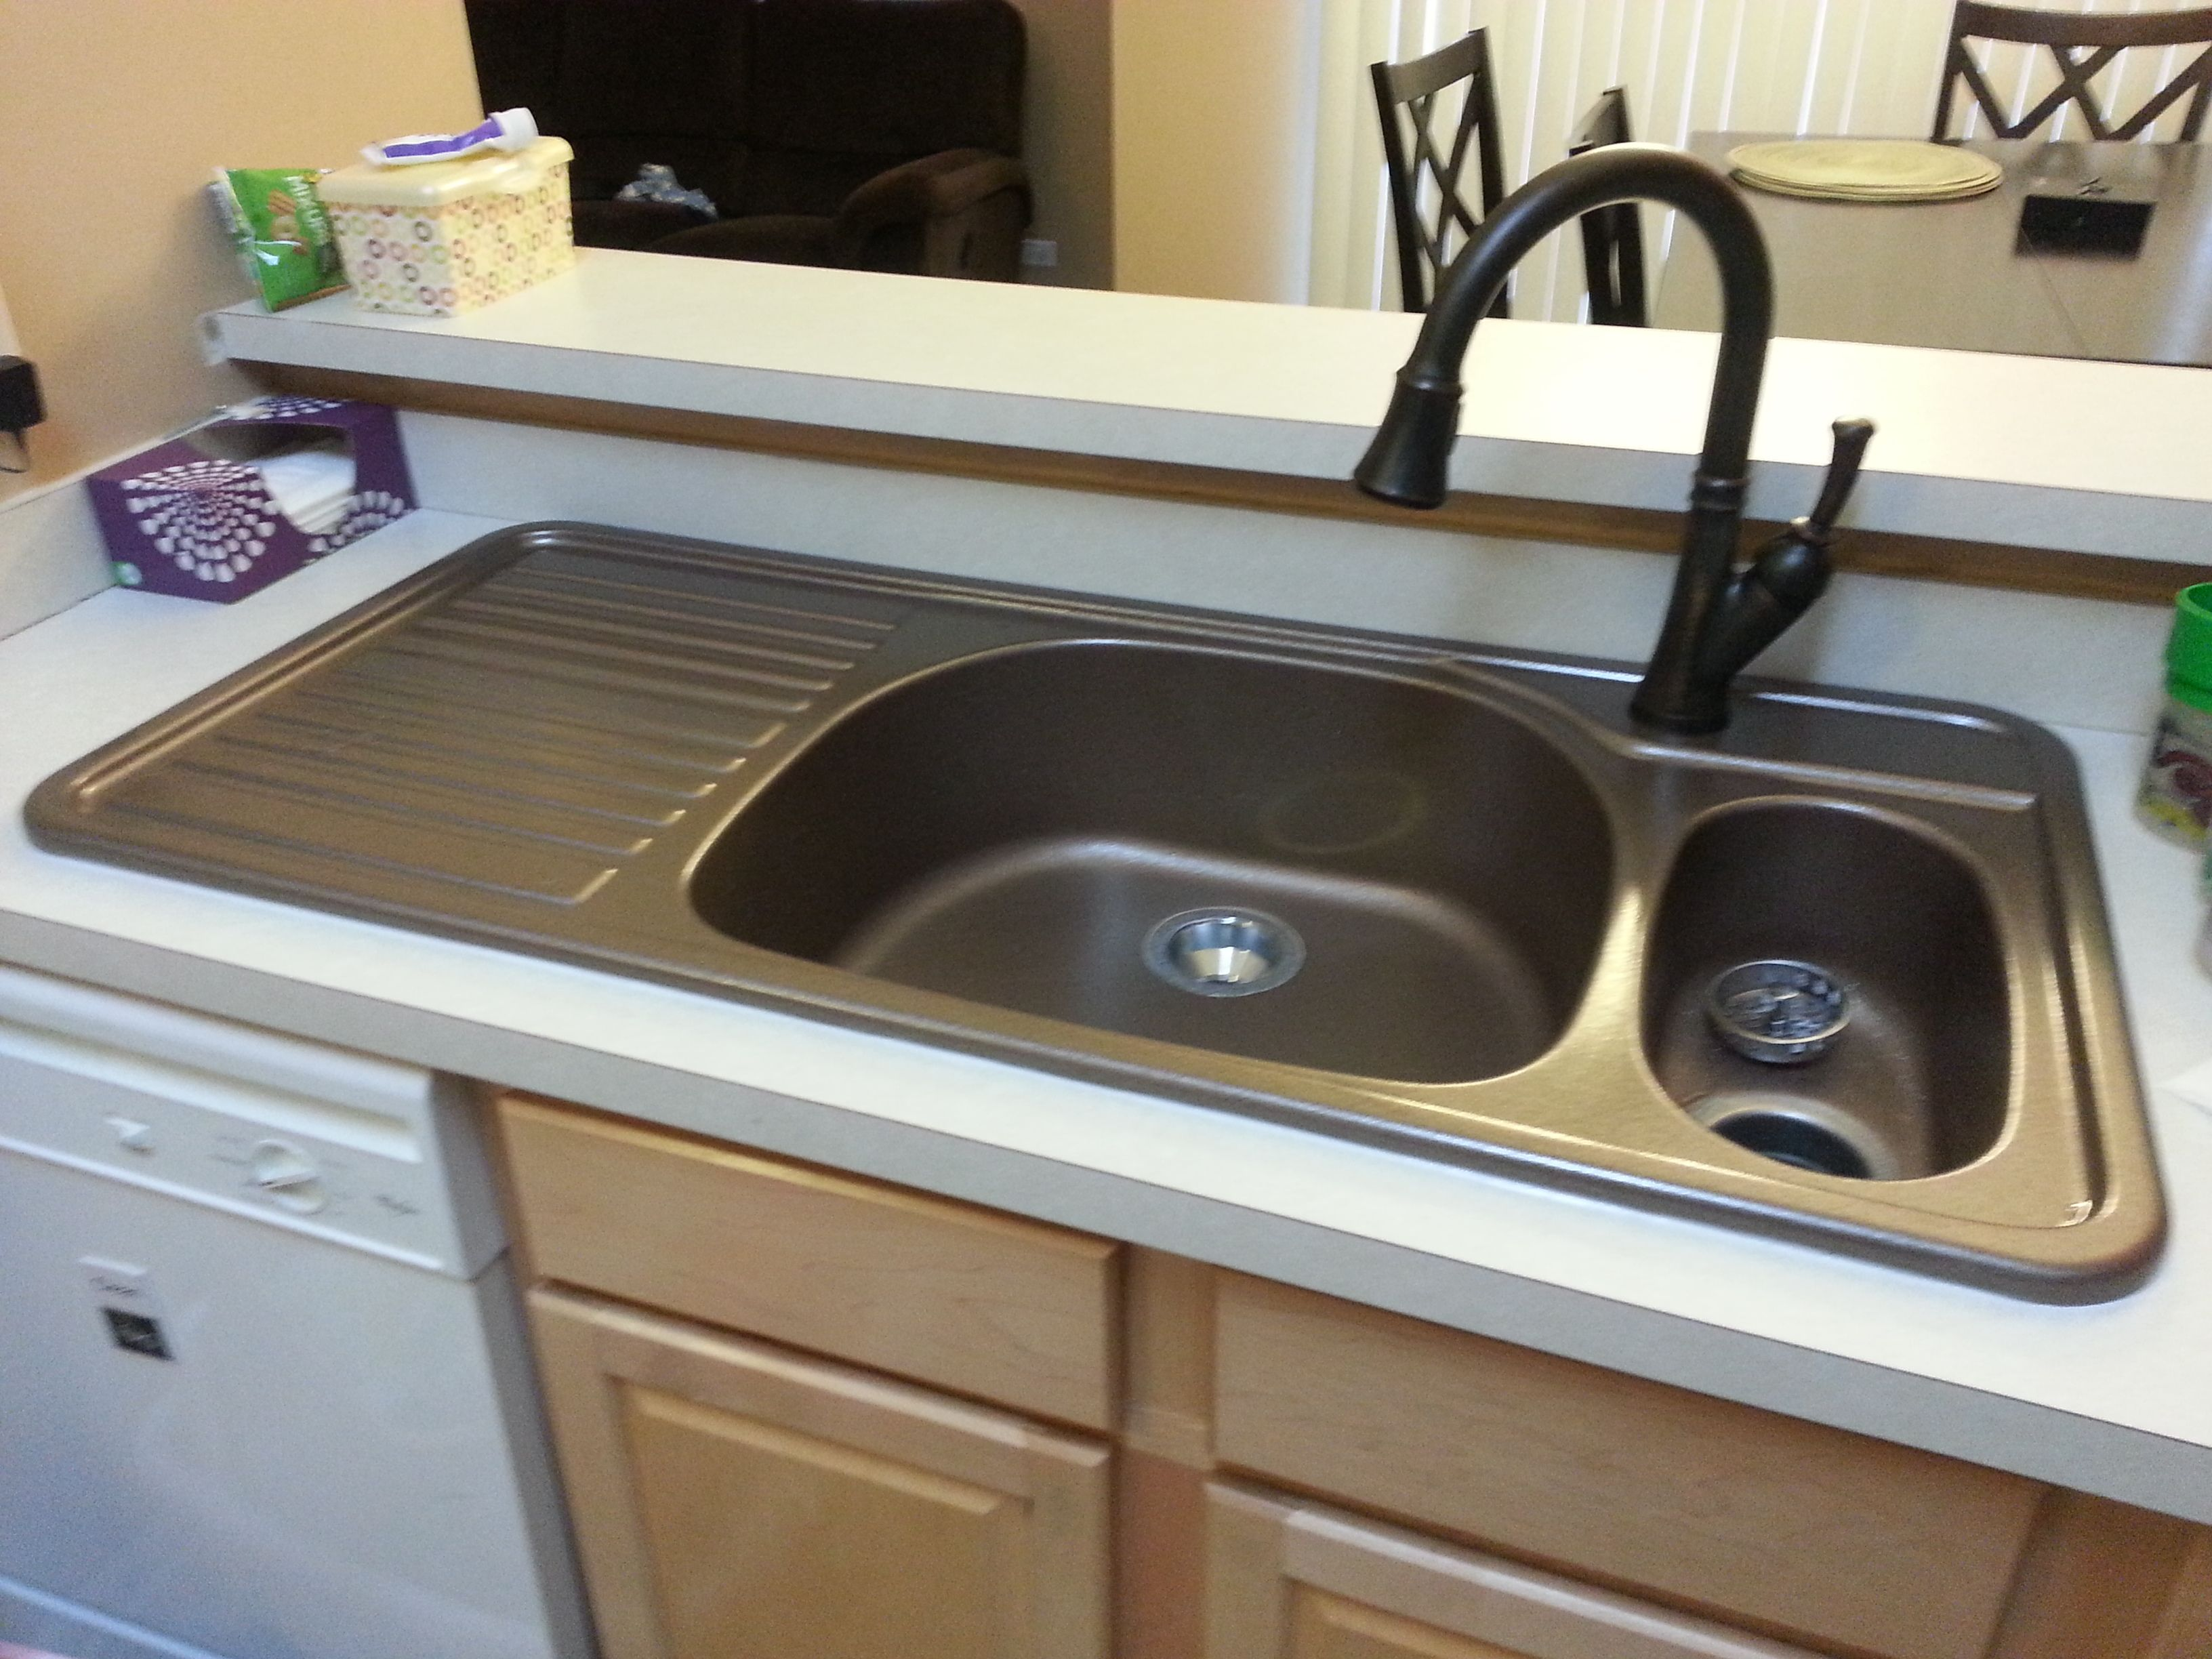 corstone kitchen sink with attached drainboard in cinnabar for the rh pinterest com corstone kitchen sink reviews corstone kitchen sink reviews